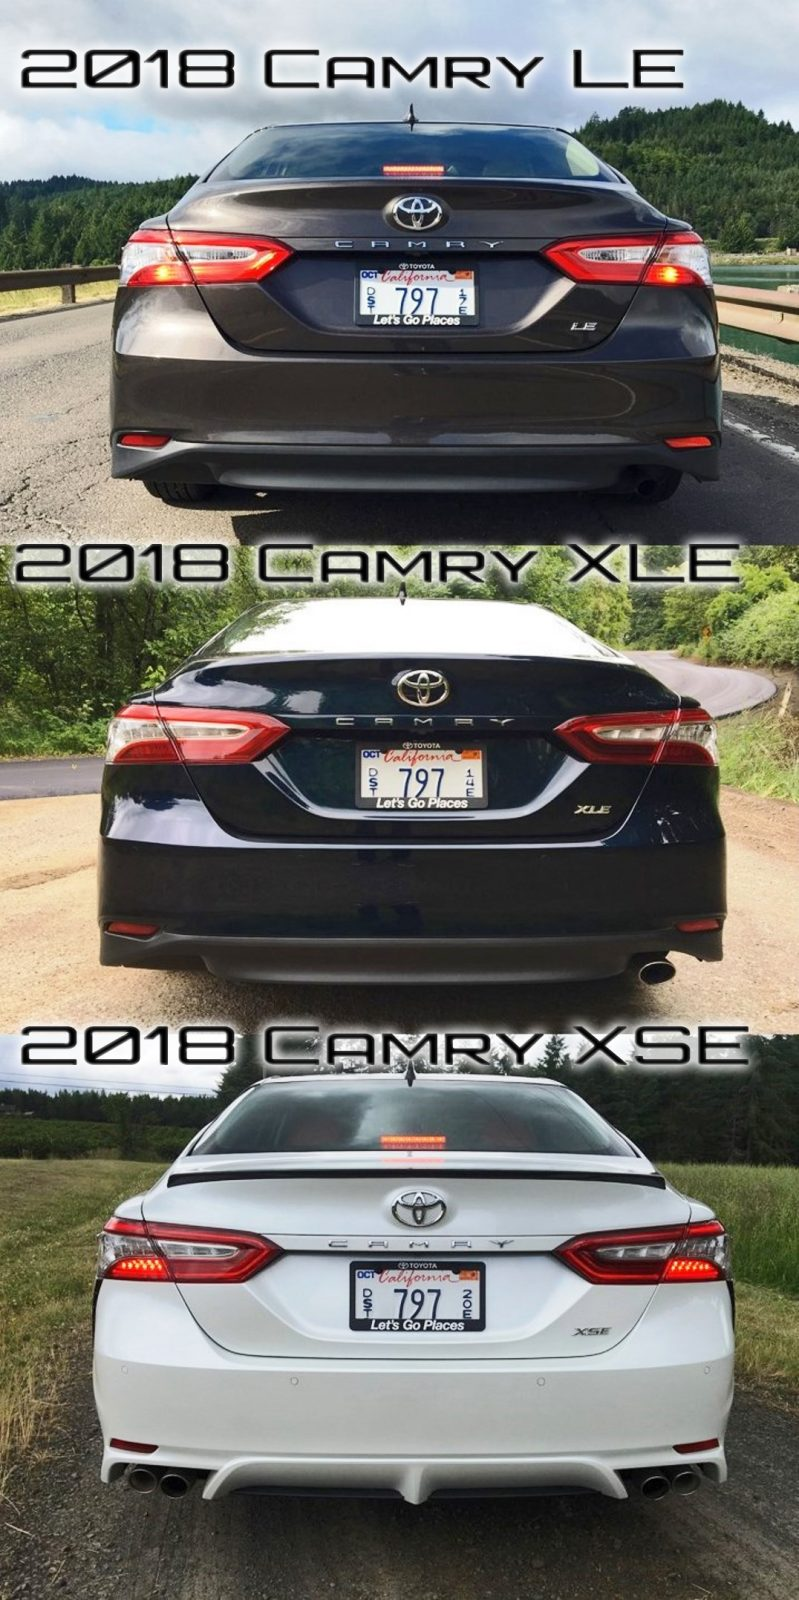 Camry-LE,-XLE-and-XSE-Trim-Comparisons-1